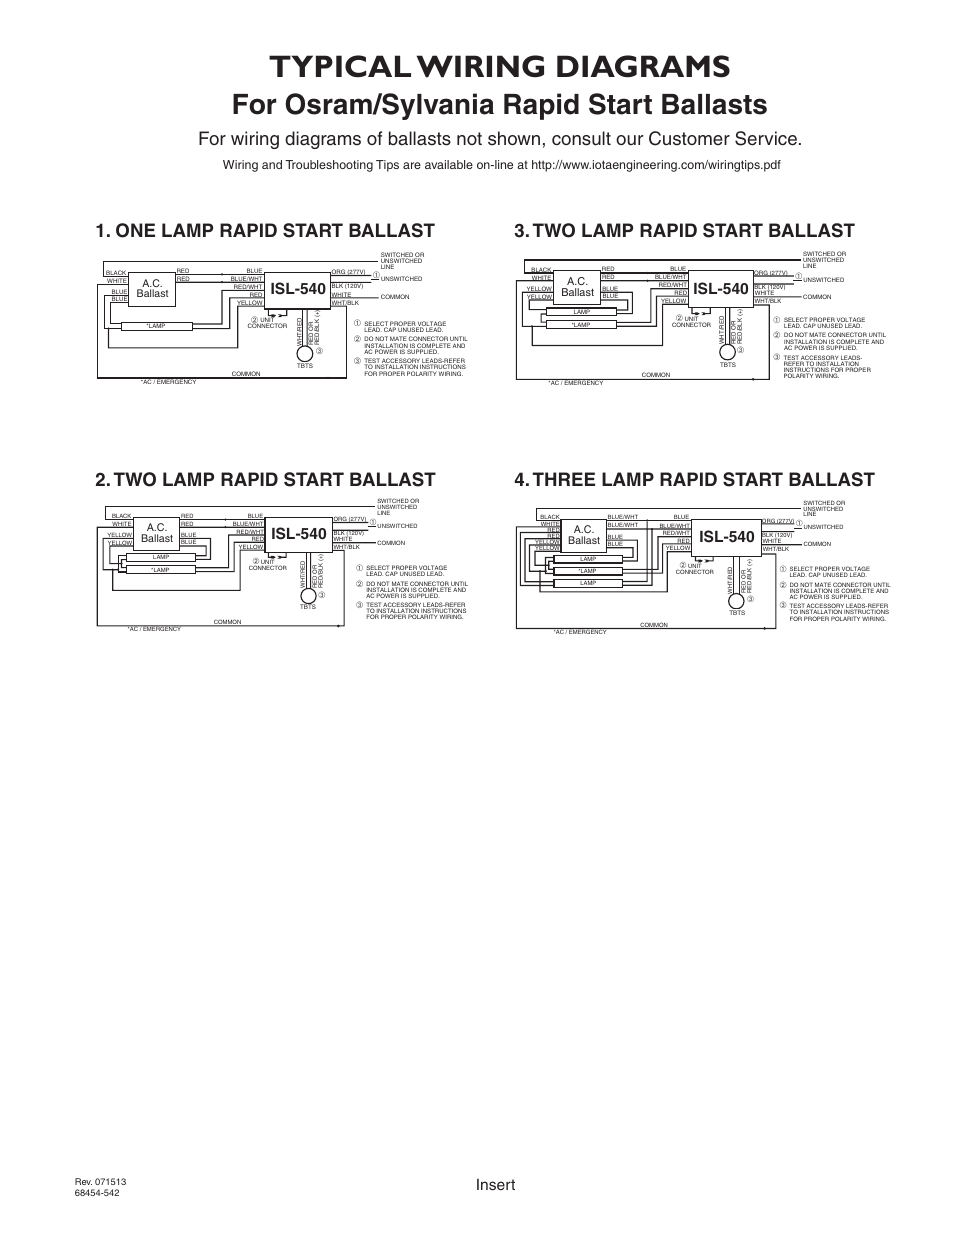 Isl 540 Ballast Wiring Diagram Libraries Osram Free Download Schematic Typical Diagrams For Sylvania Rapid Start Ballaststypical